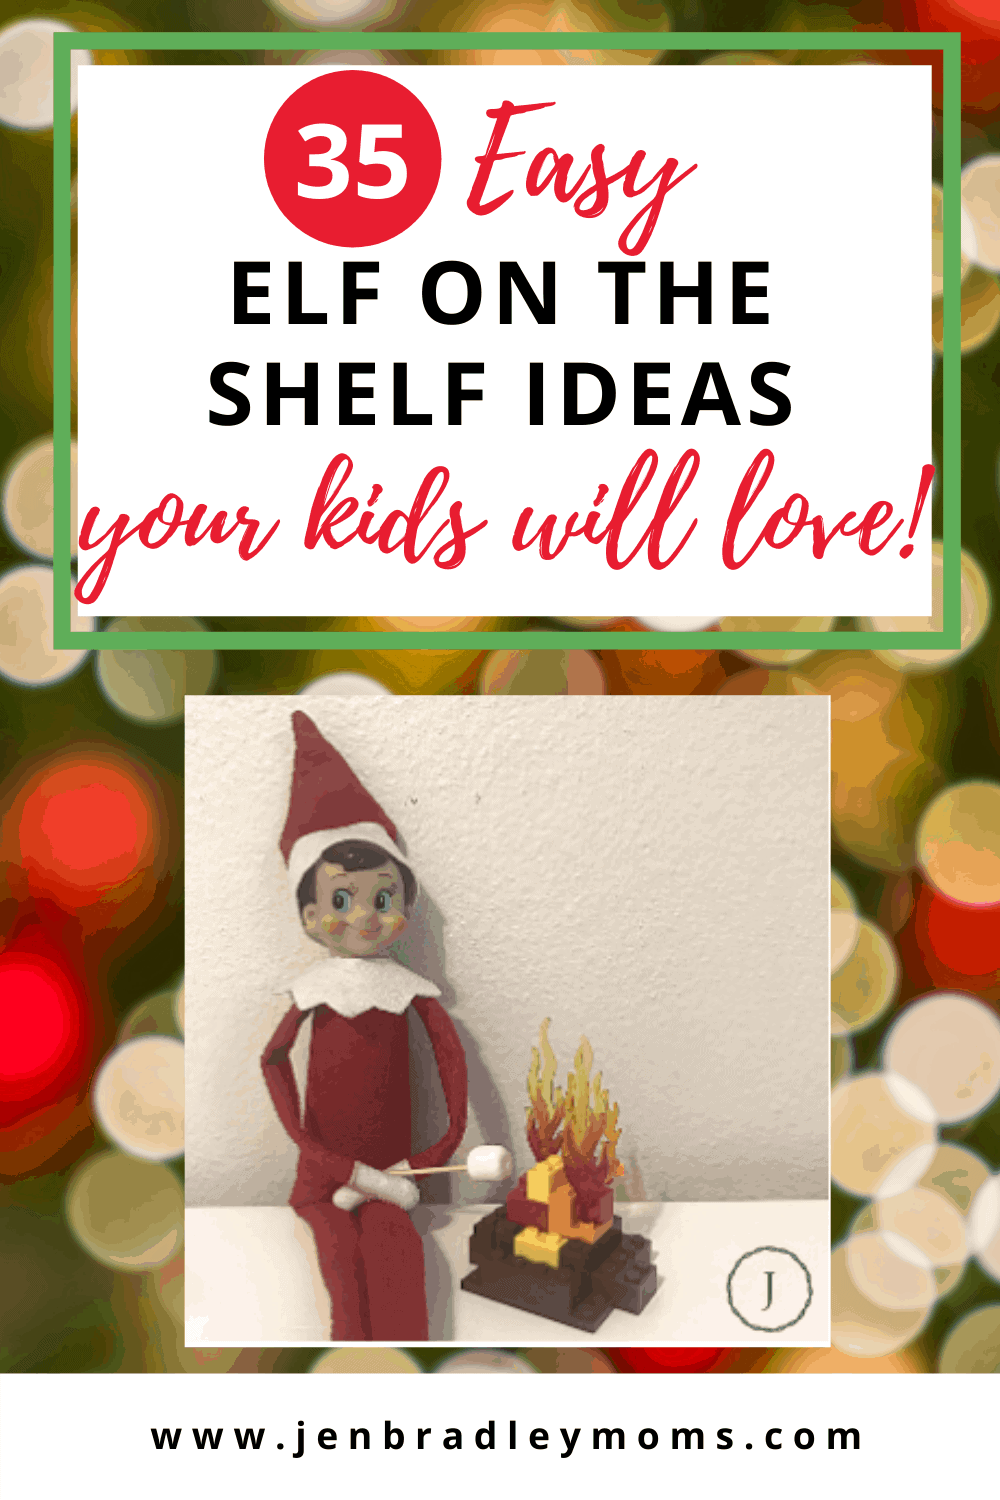 35 Easy Last Minute Elf on the Shelf Ideas Your Kids Will Love